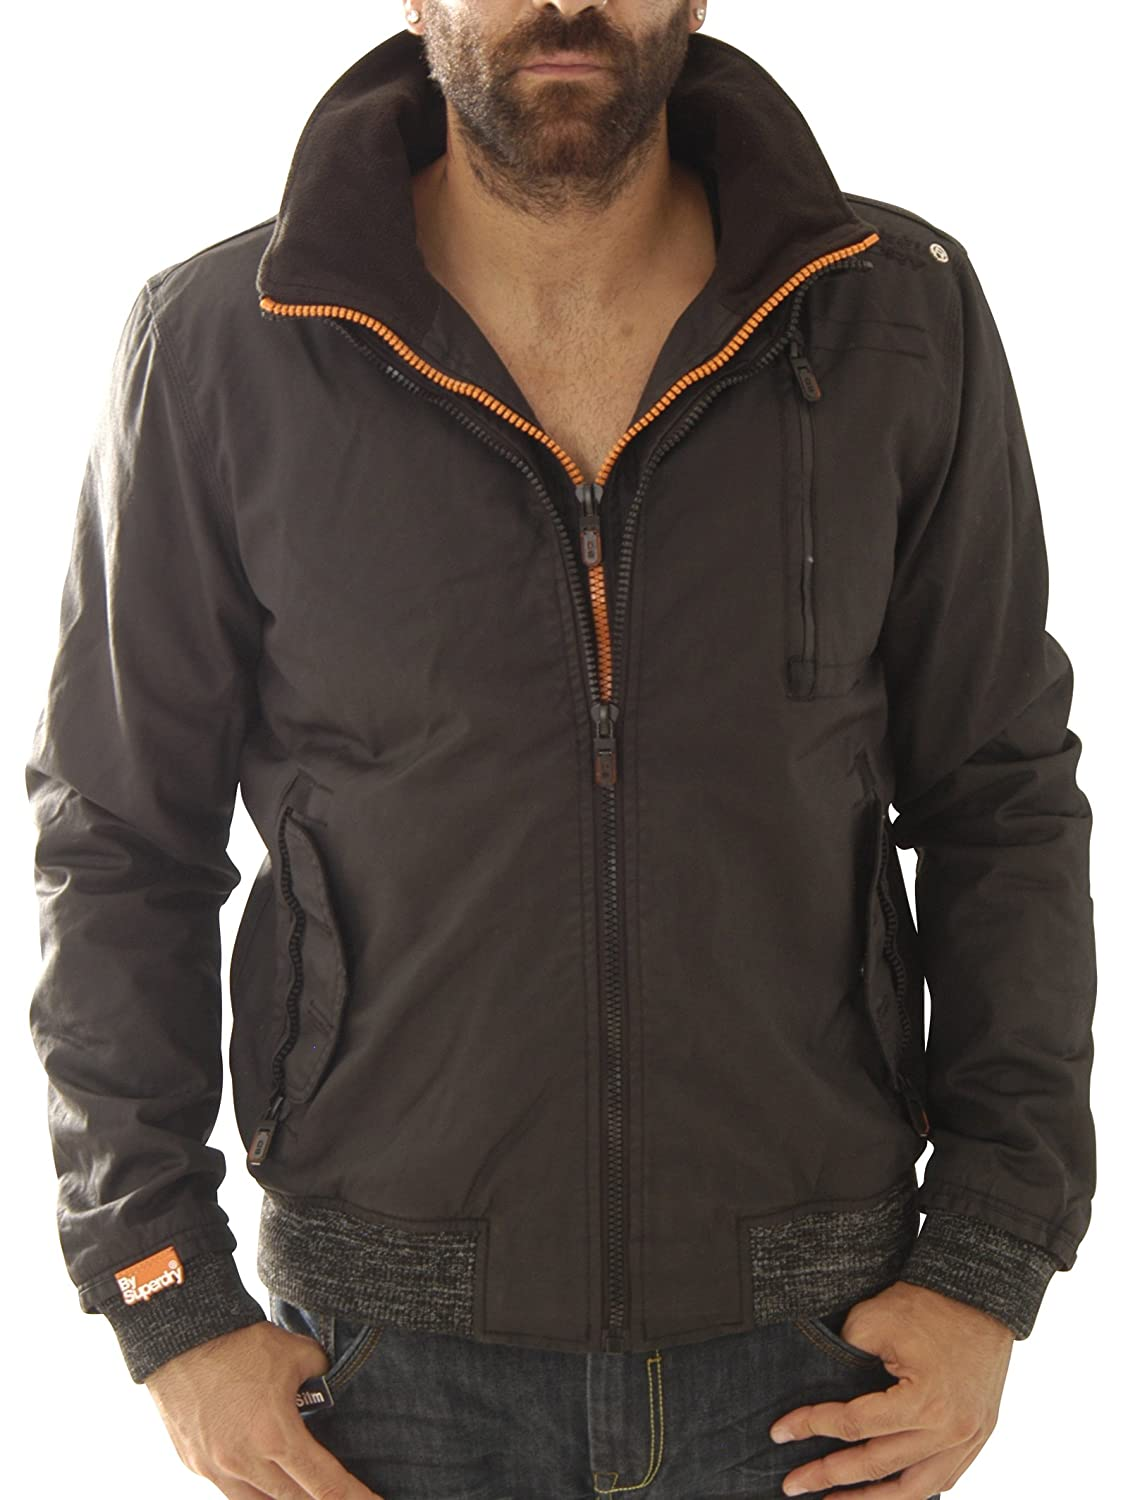 Superdry Herren Jacke Moody Norse Bomber M50lr001f1-02a